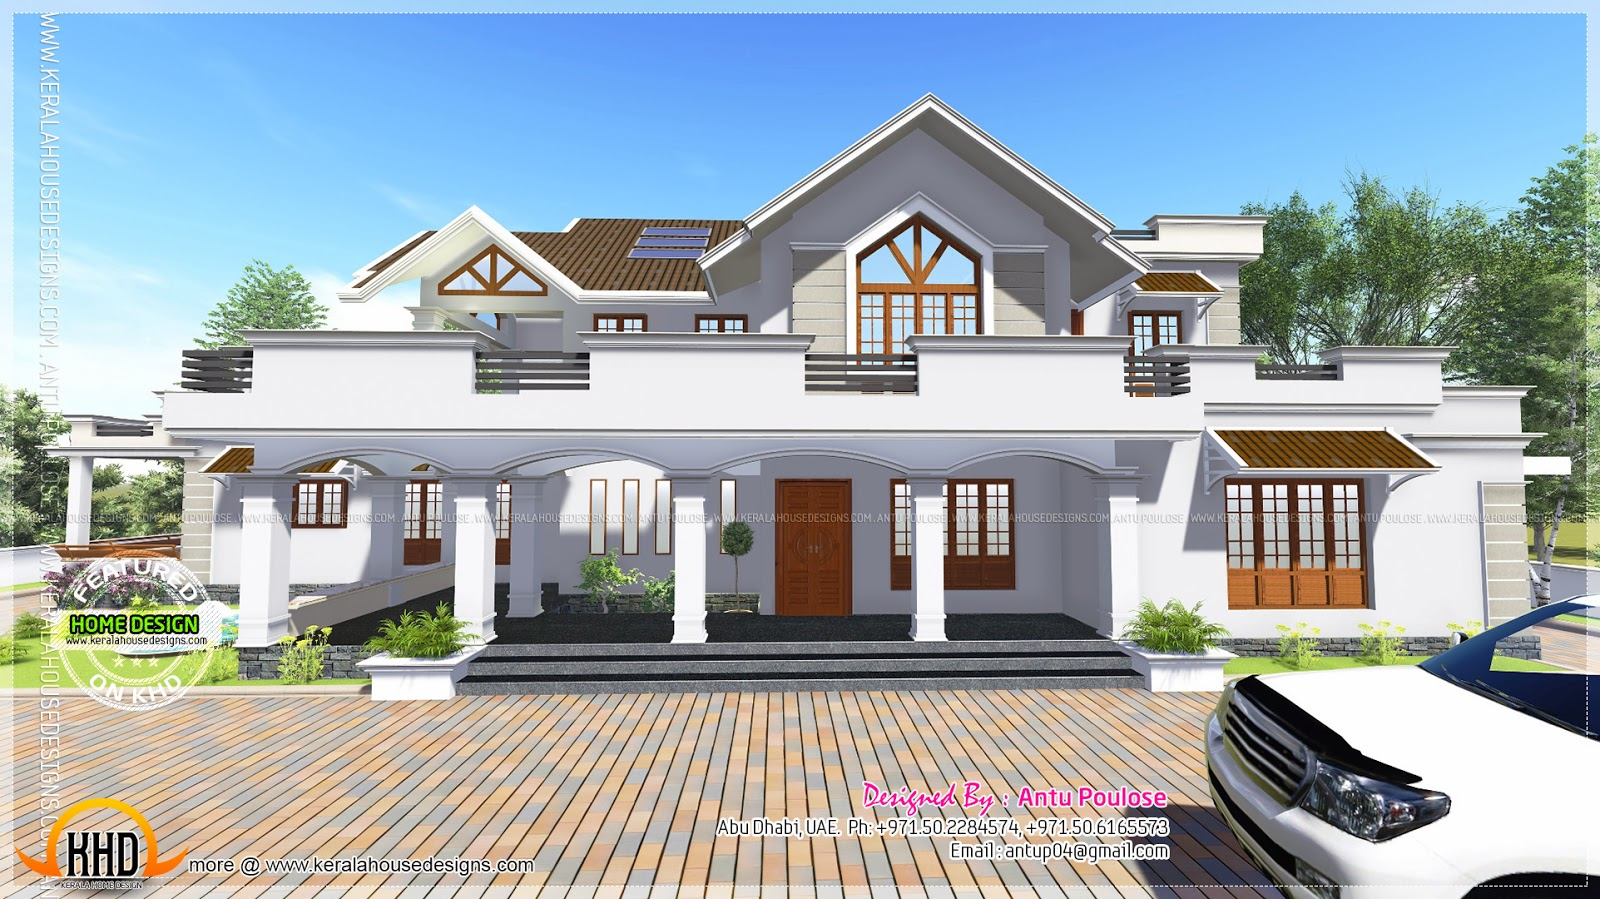 10000 sq ft house plans india for Modern house plans for 1600 sq ft